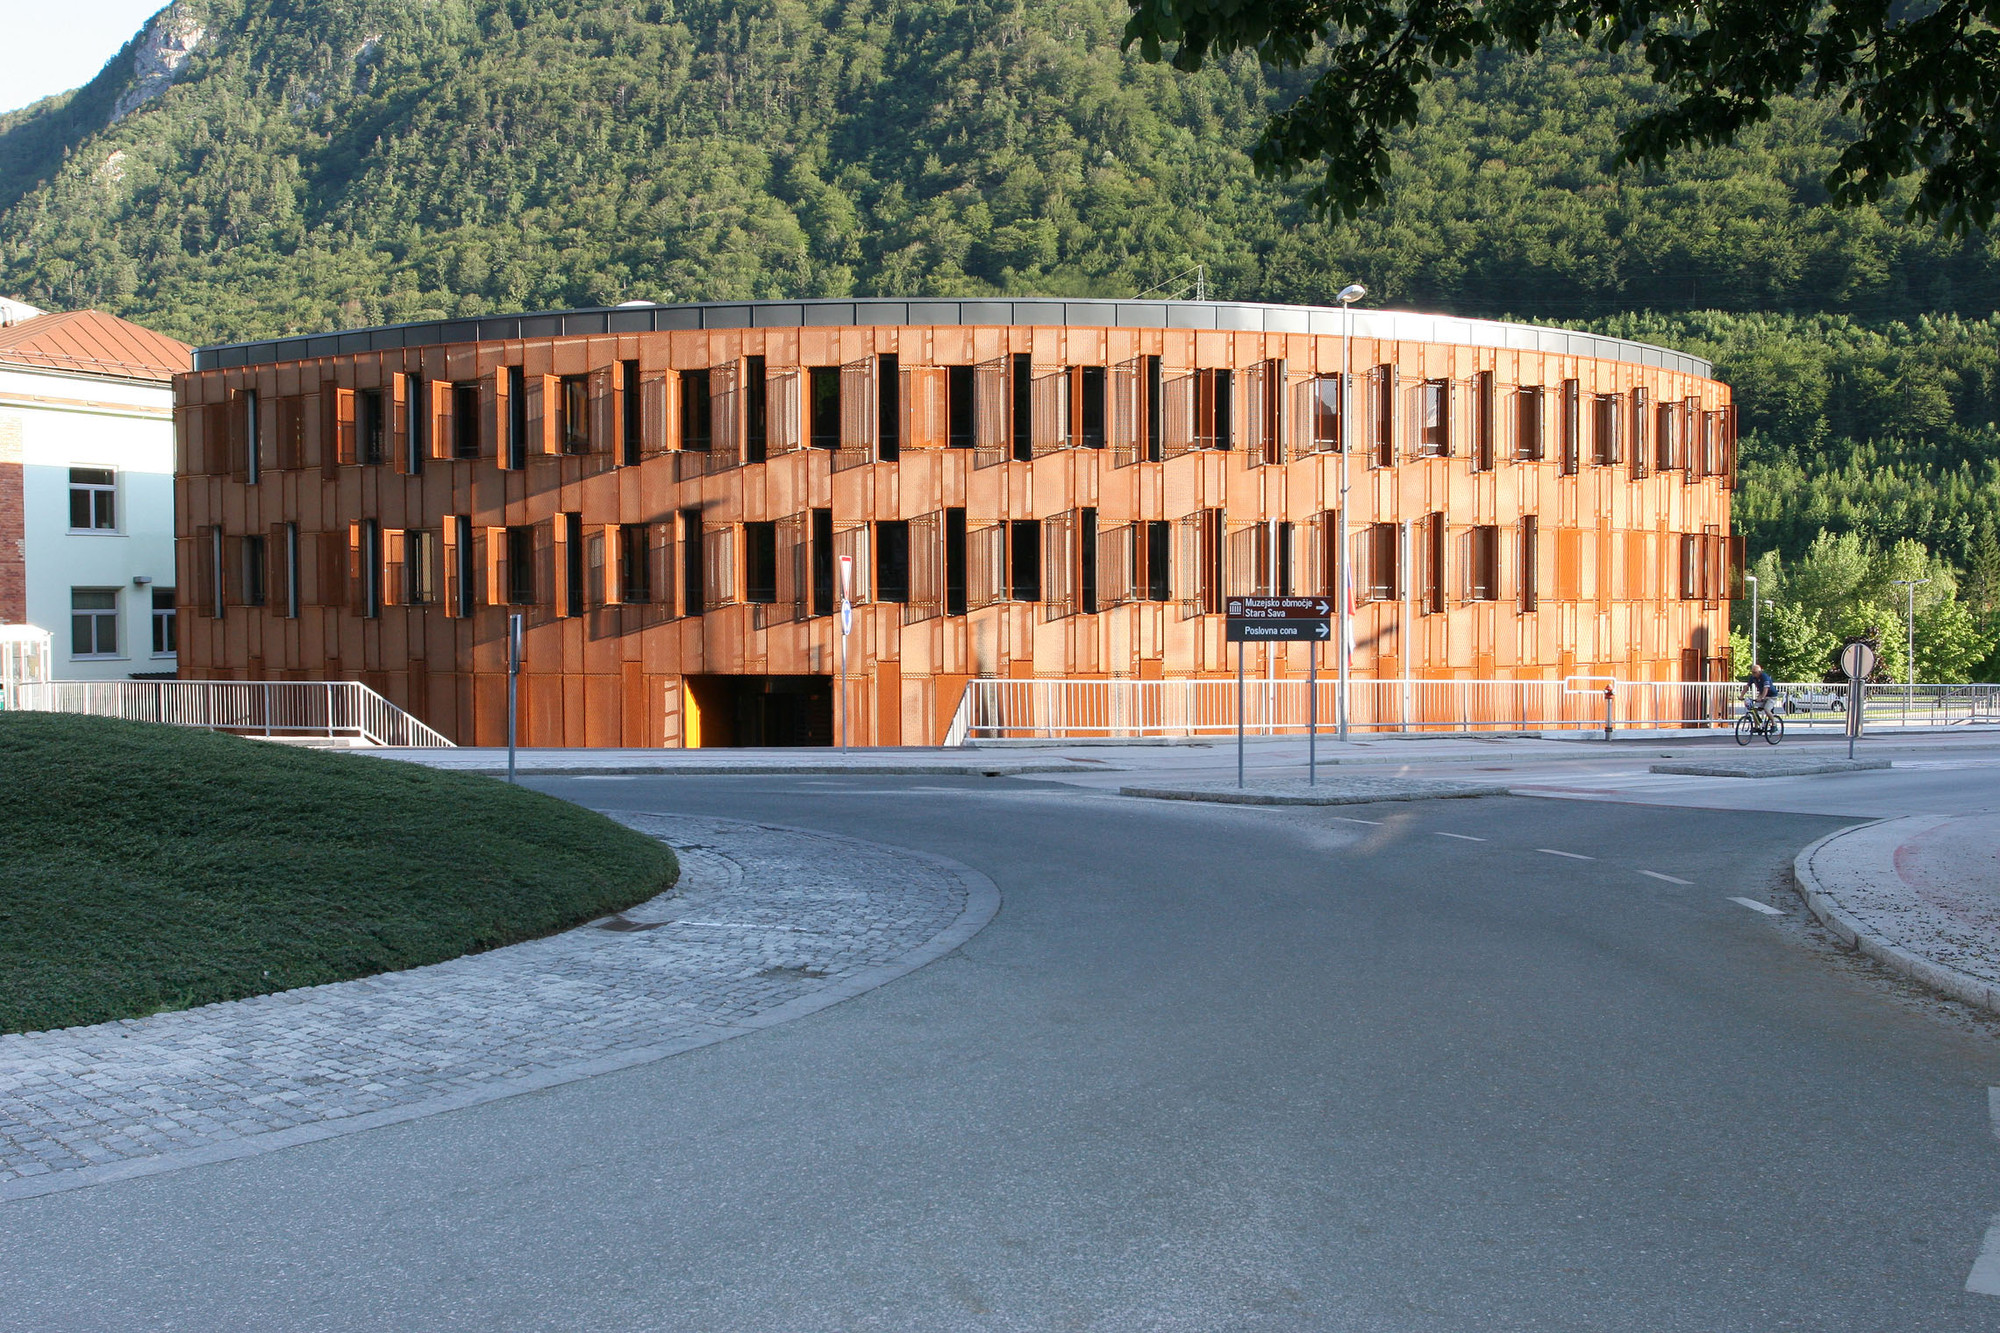 Administrative Center Jesenice / Studio Kalamar, Courtesy of Studio Kalamar